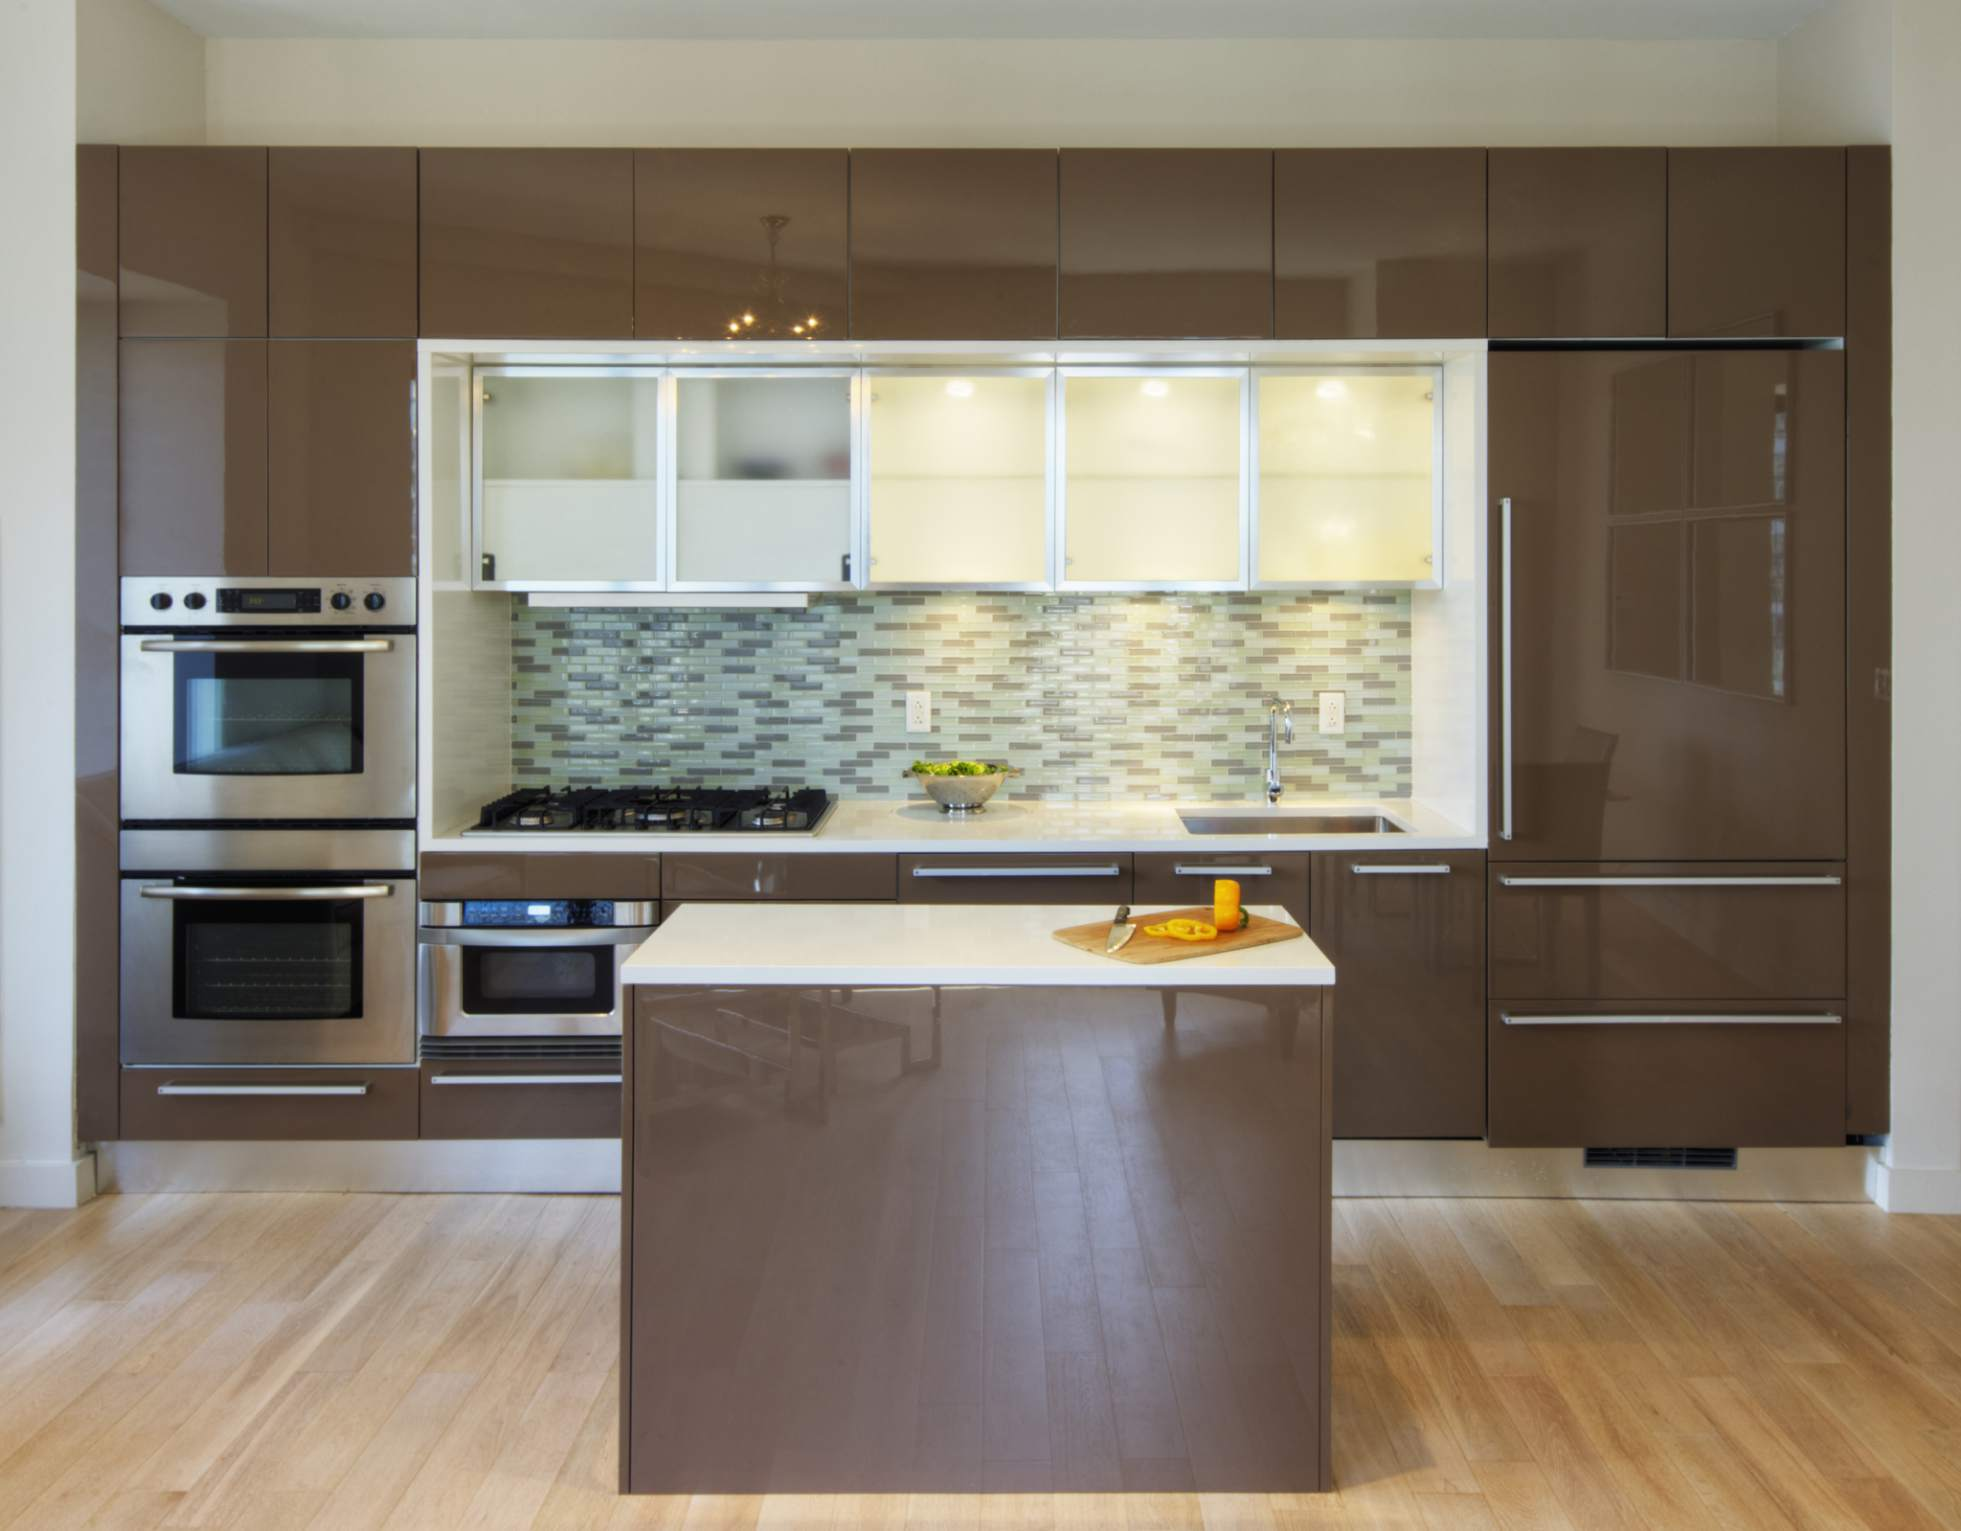 A set of high-gloss slab kitchen cabinet doors in a kitchen.